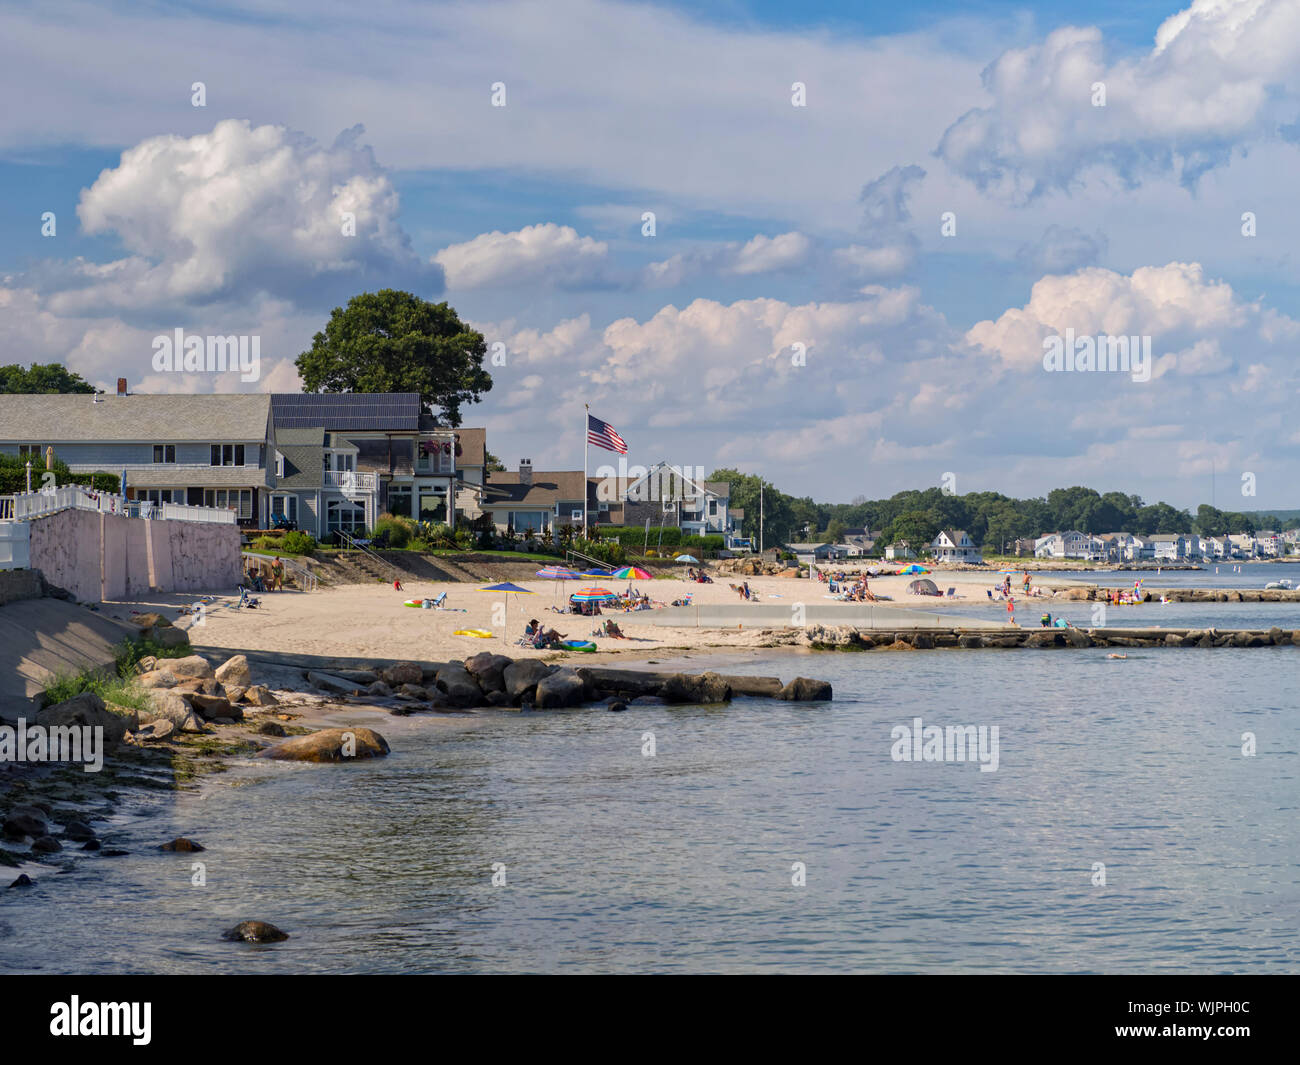 niantic-connecticut-usa-aug-22-2019-residents-of-this-new-england-small-town-and-vacationers-enjoy-a-summer-day-by-the-sea-at-black-point-beach-WJPH0C.jpg